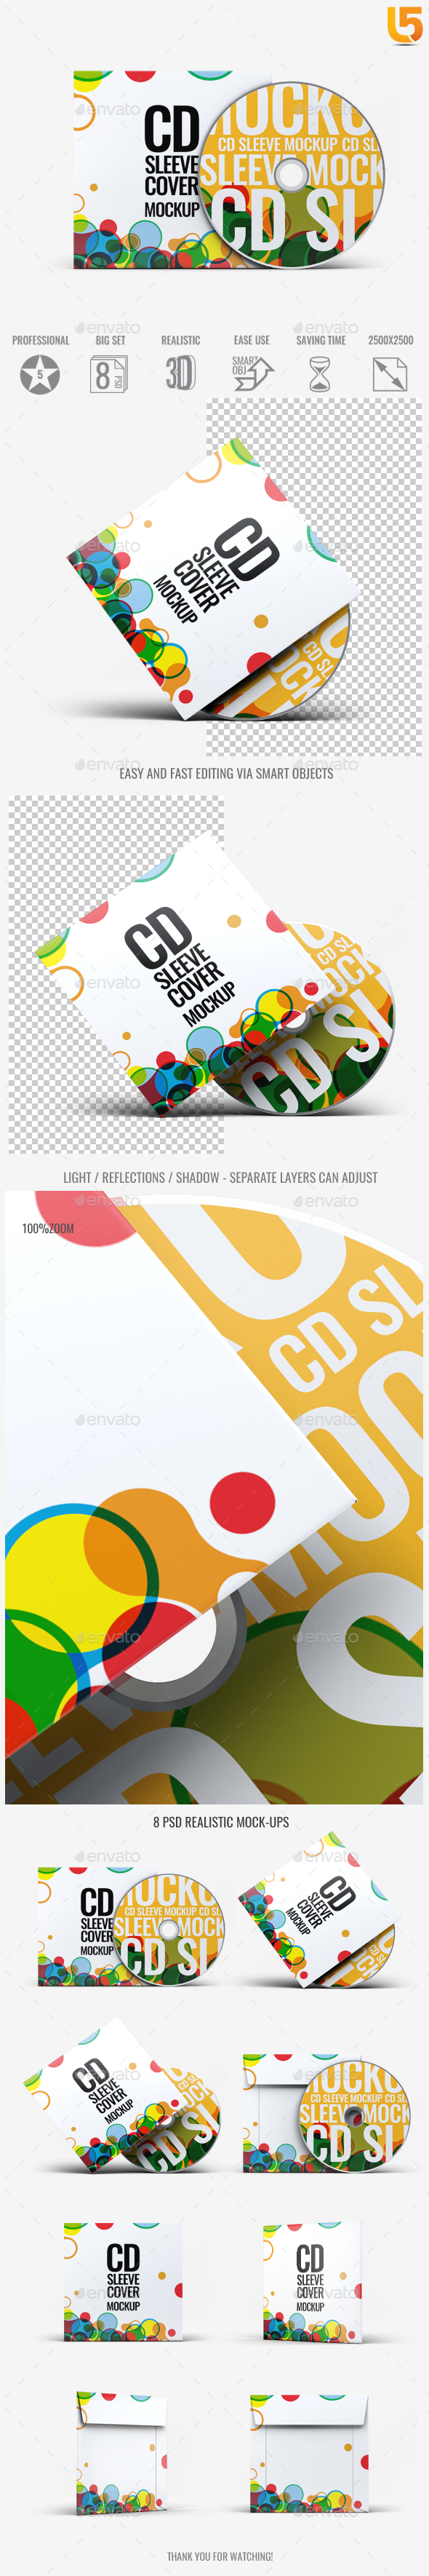 CD Sleeve Cover Mock-Up v.02 - Discs Packaging